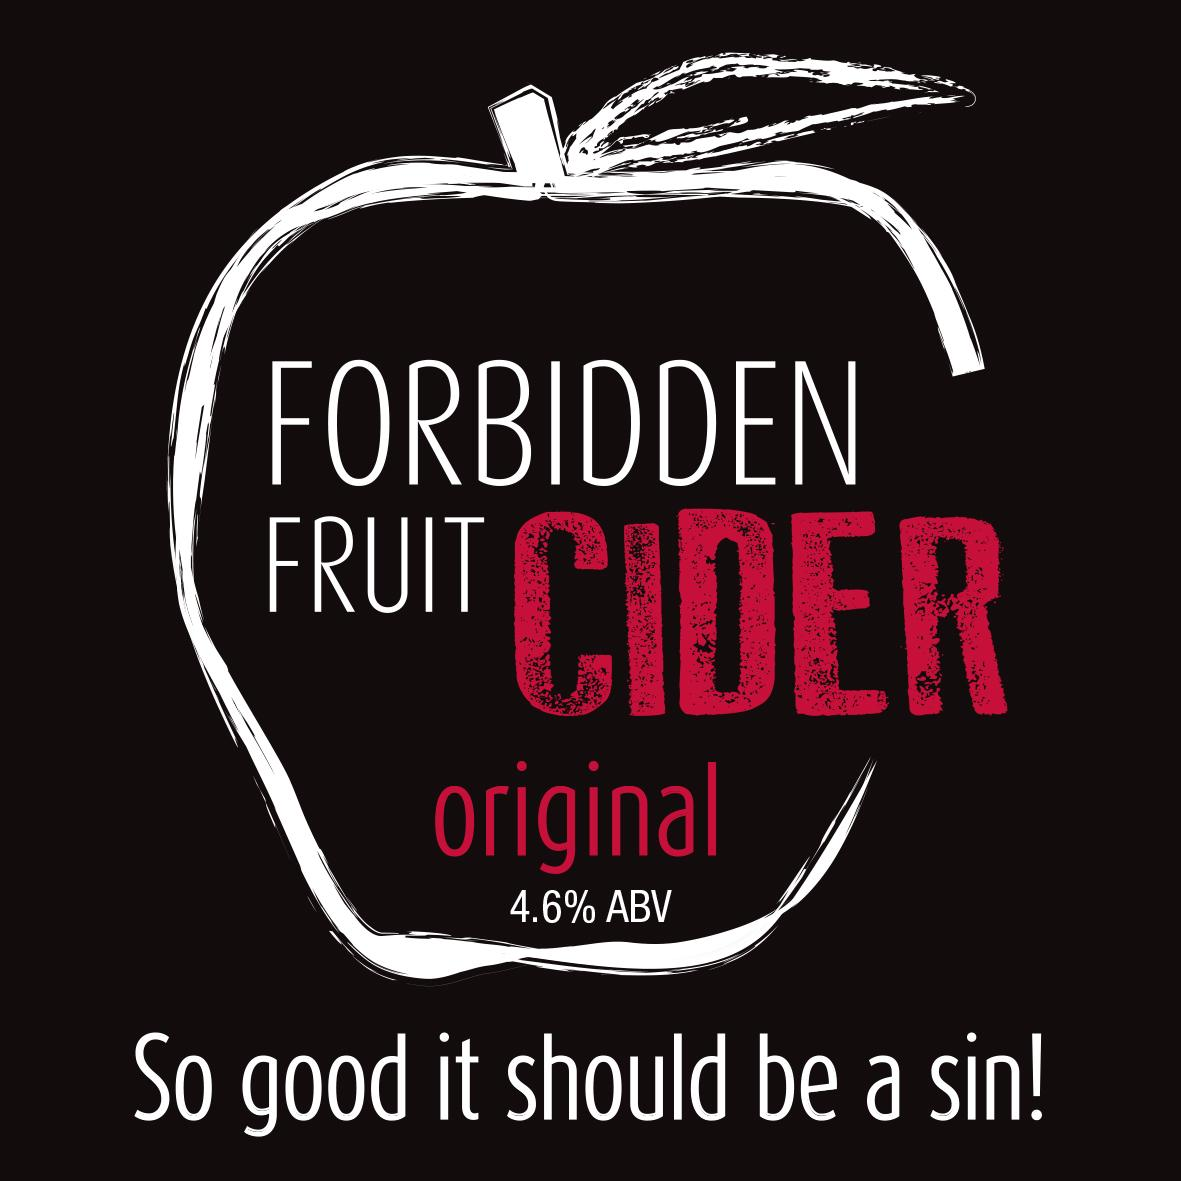 forbidden fruit cider original craft cider